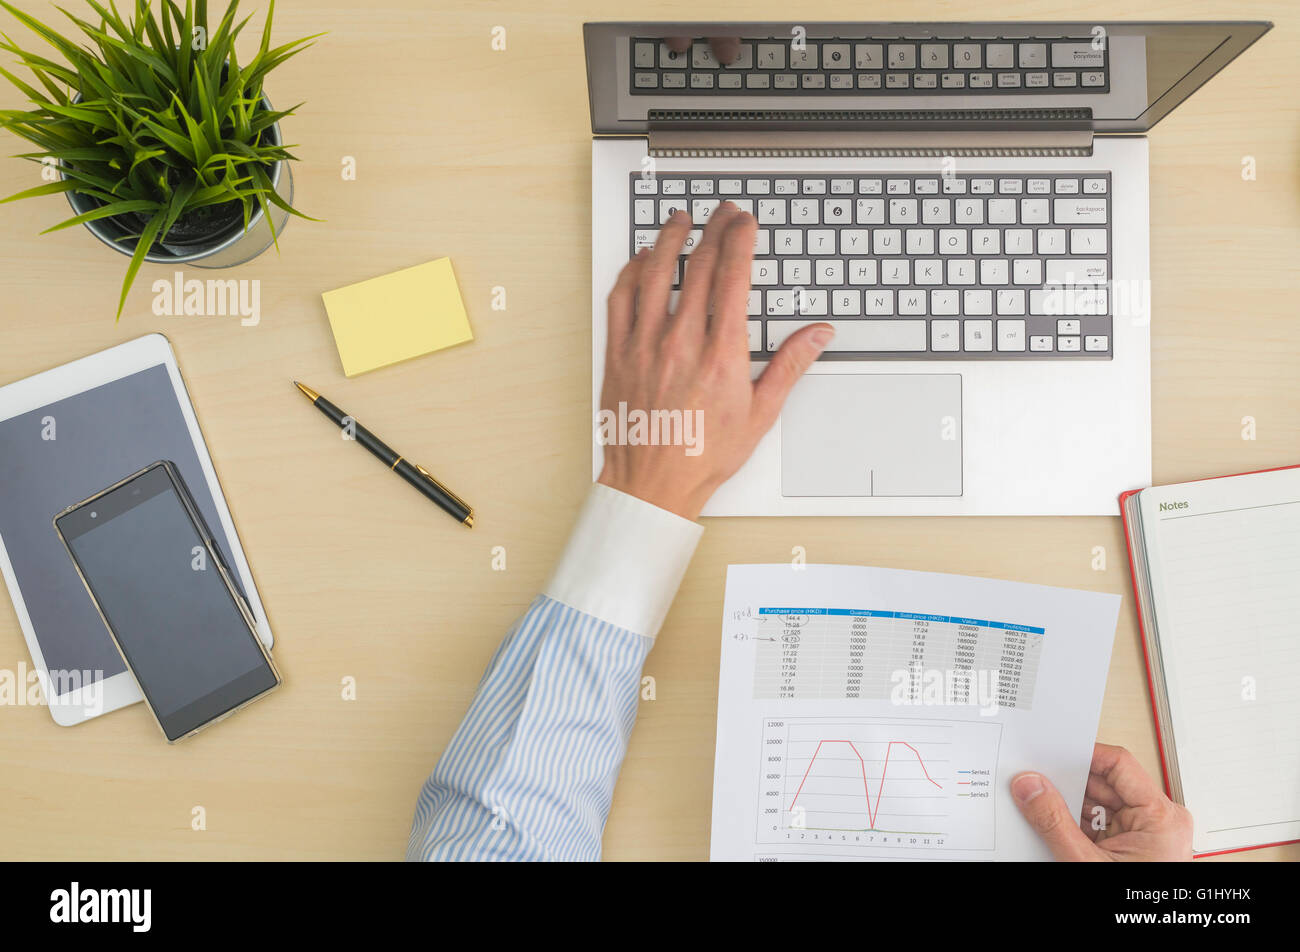 Data input and analysis at office - Stock Image